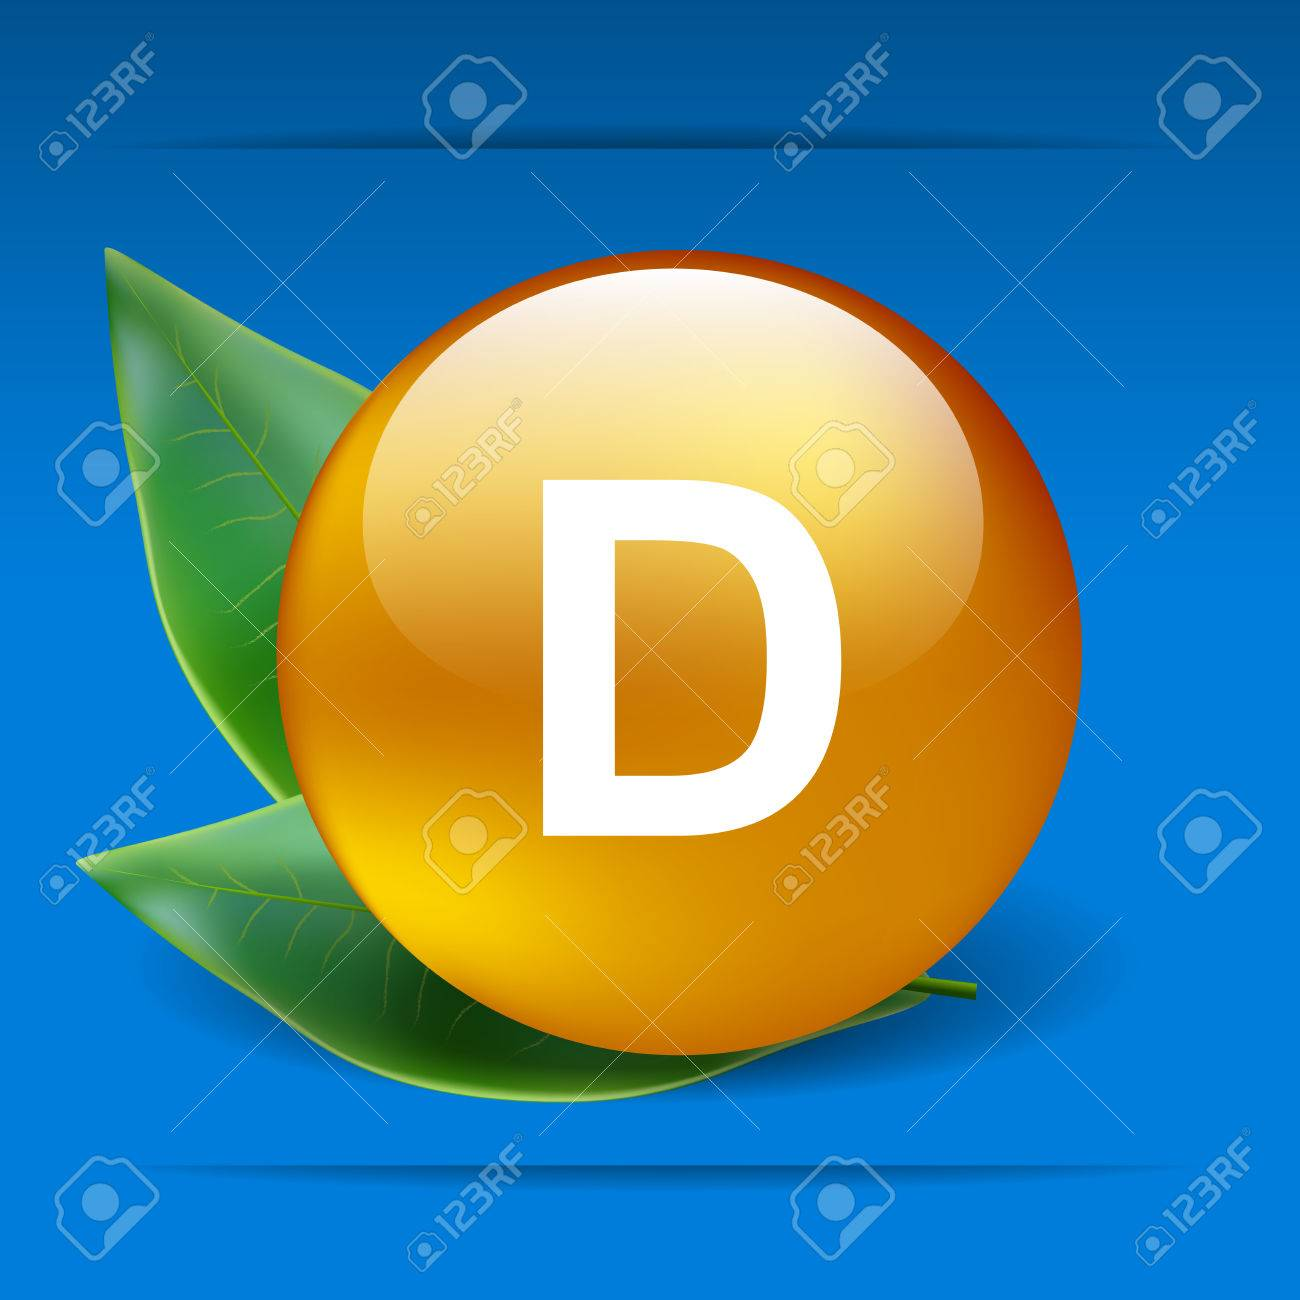 Vitamin D with green leaves as concept - 30505057